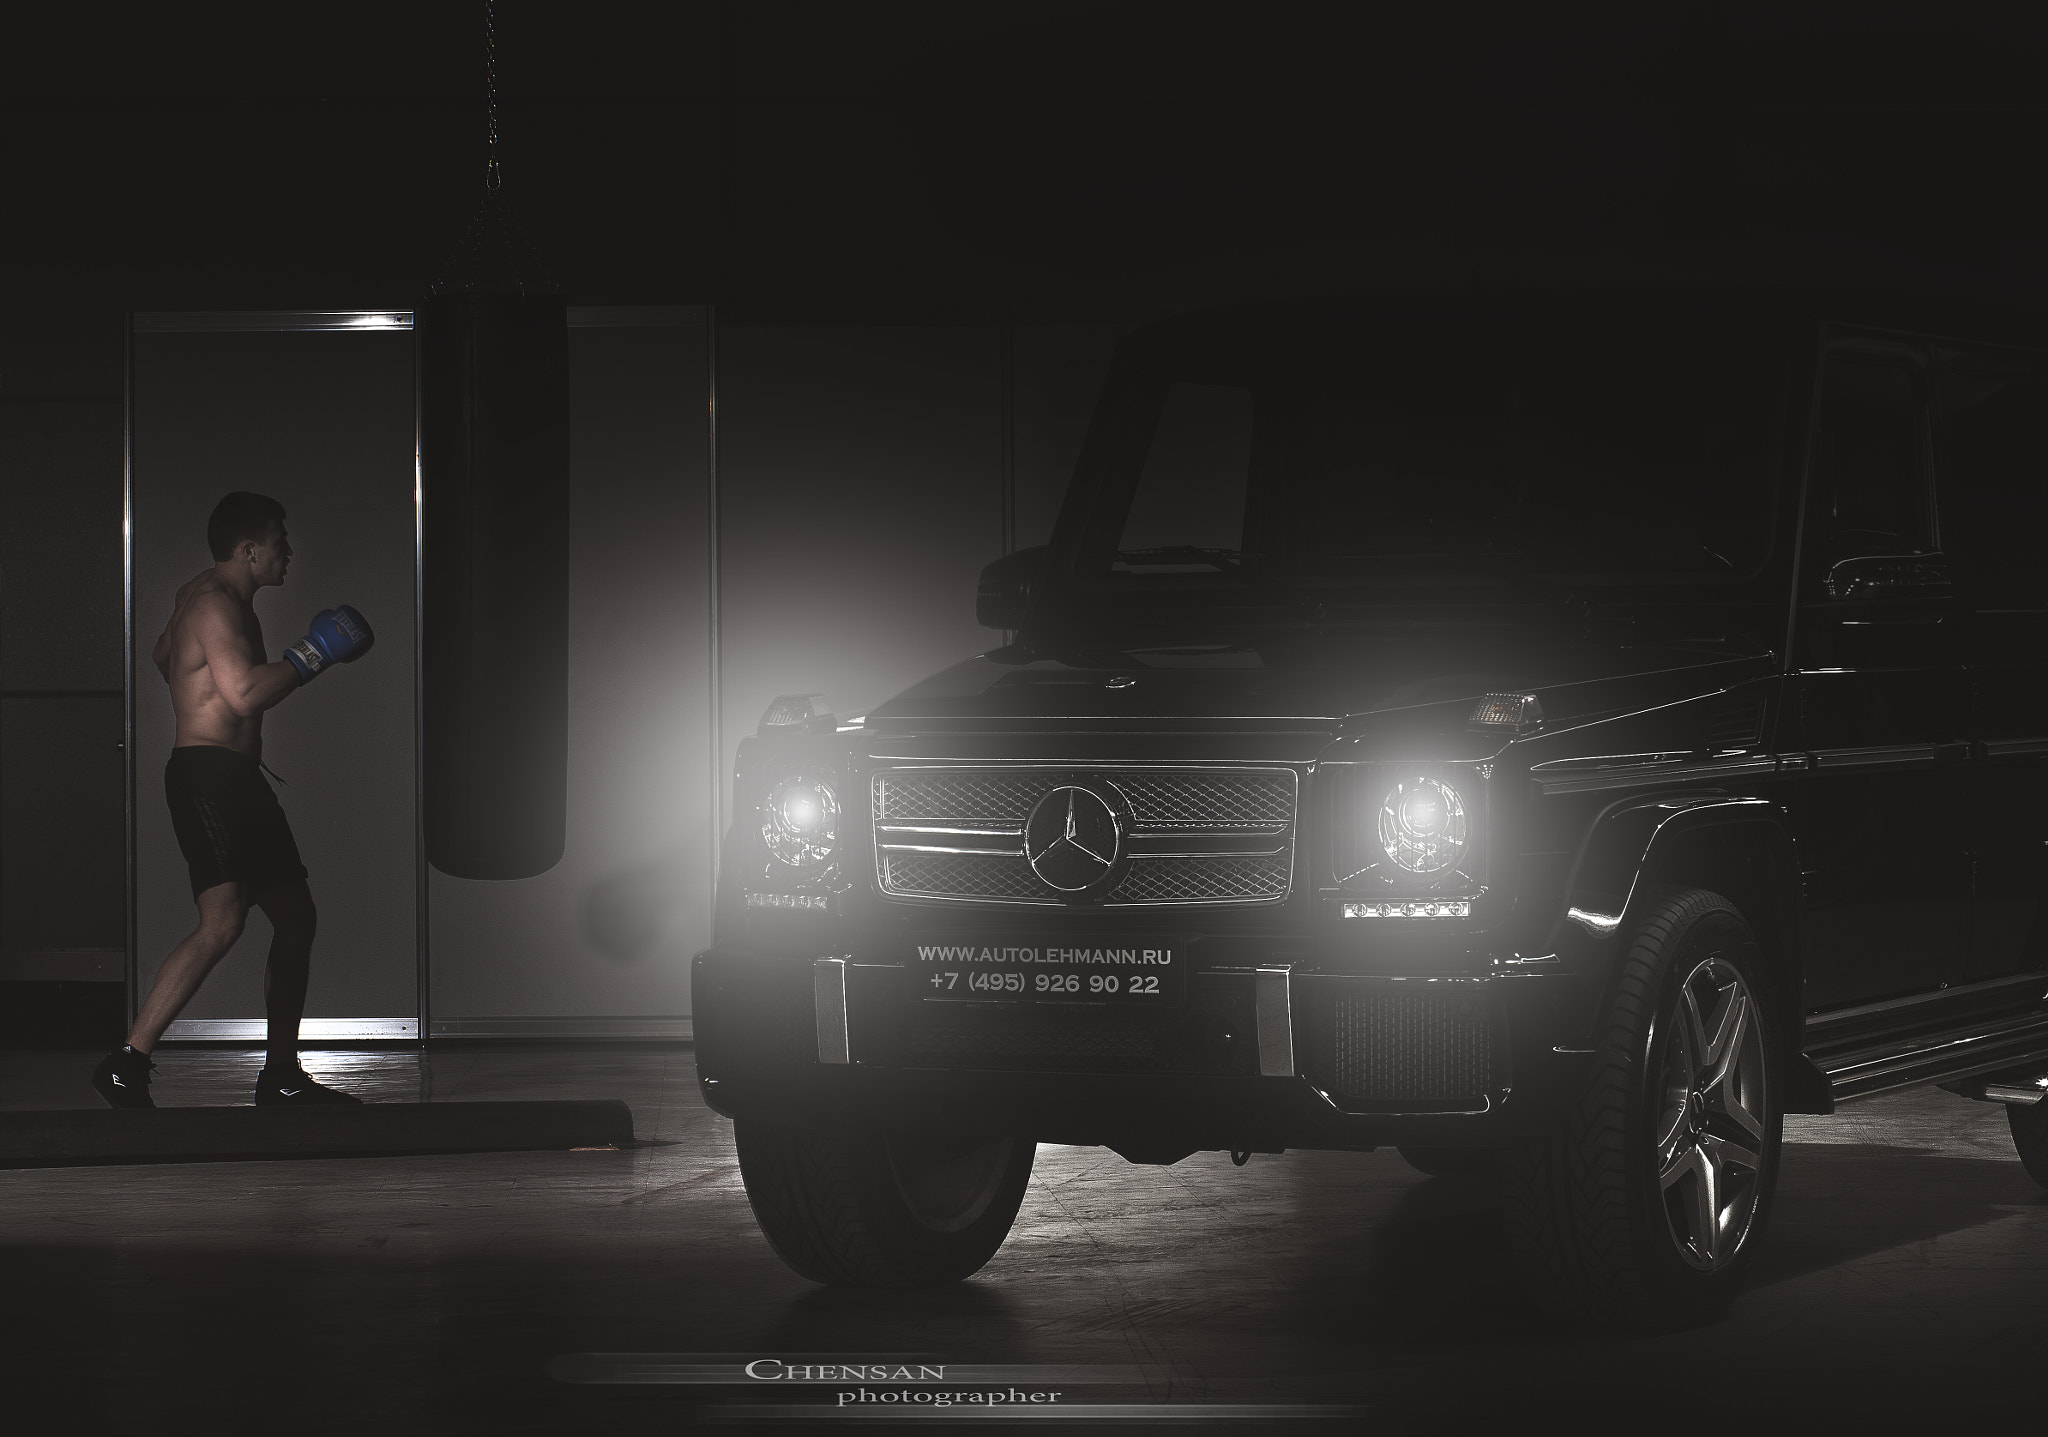 Photograph Mercedes-Benz G65 AMG . by Chensan , automotive photographer .  by  Chensan on 500px